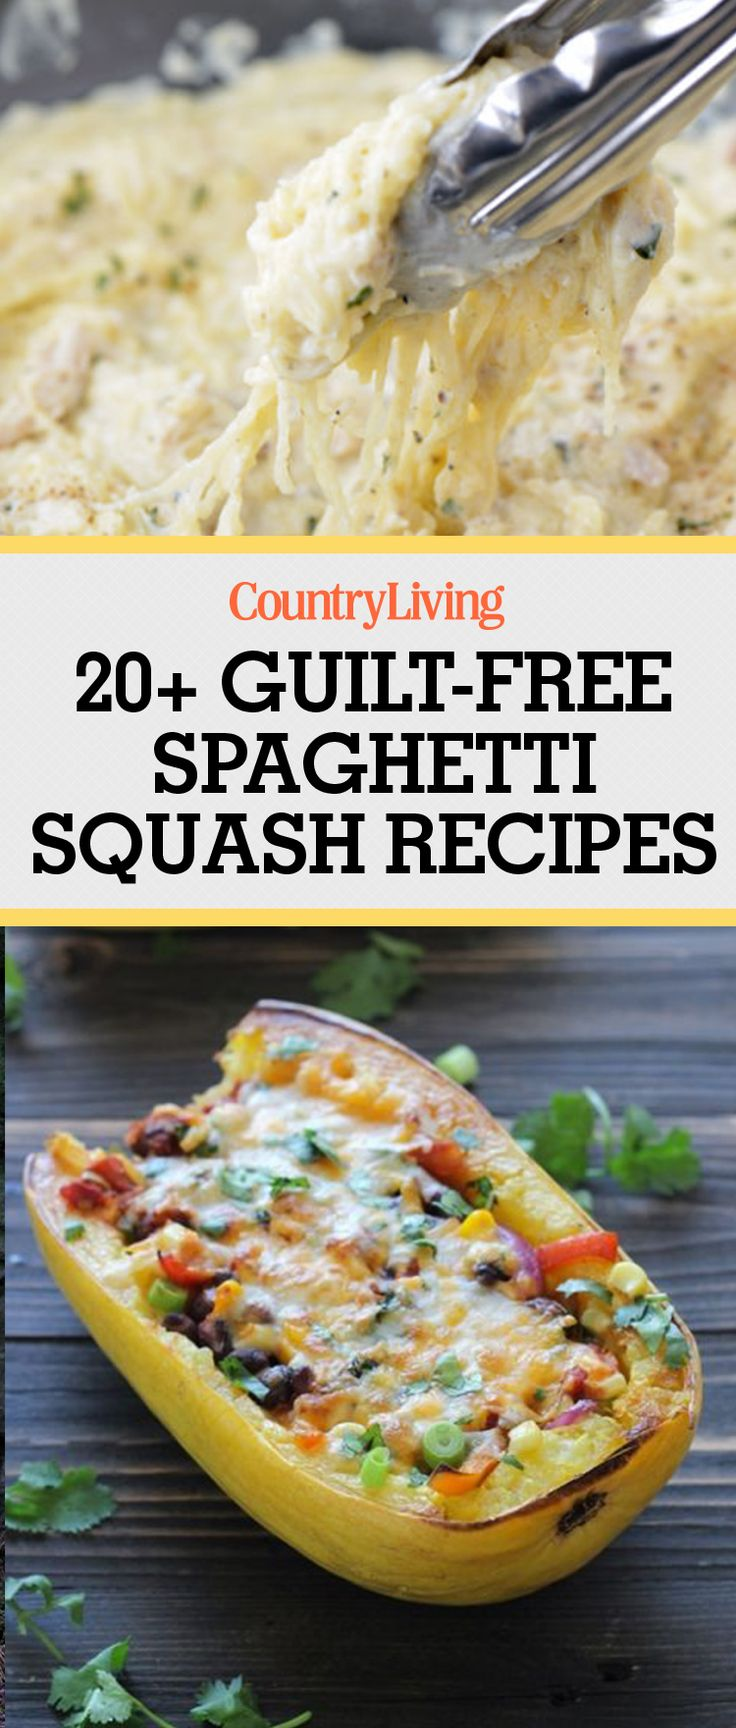 Save these guilt-free spaghetti squashrecipes for later! Don't forget tofollow Country Living on Pinterestfor more great recipes.